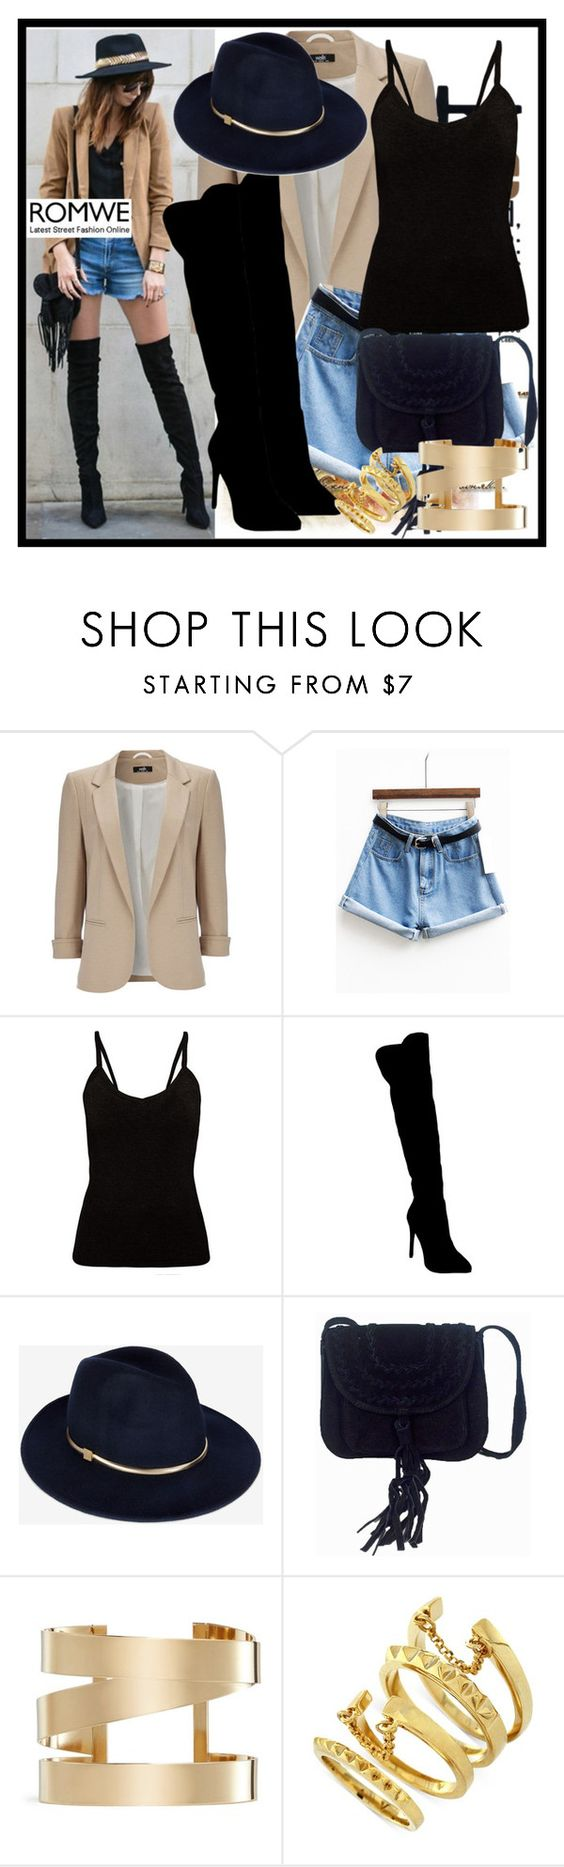 """ROMWE"" by deedee-pekarik ❤ liked on Polyvore featuring Wallis, Atmos&Here, Ted Baker, Isabel Marant, Vince Camuto, shorts, romwe and denimshorts"